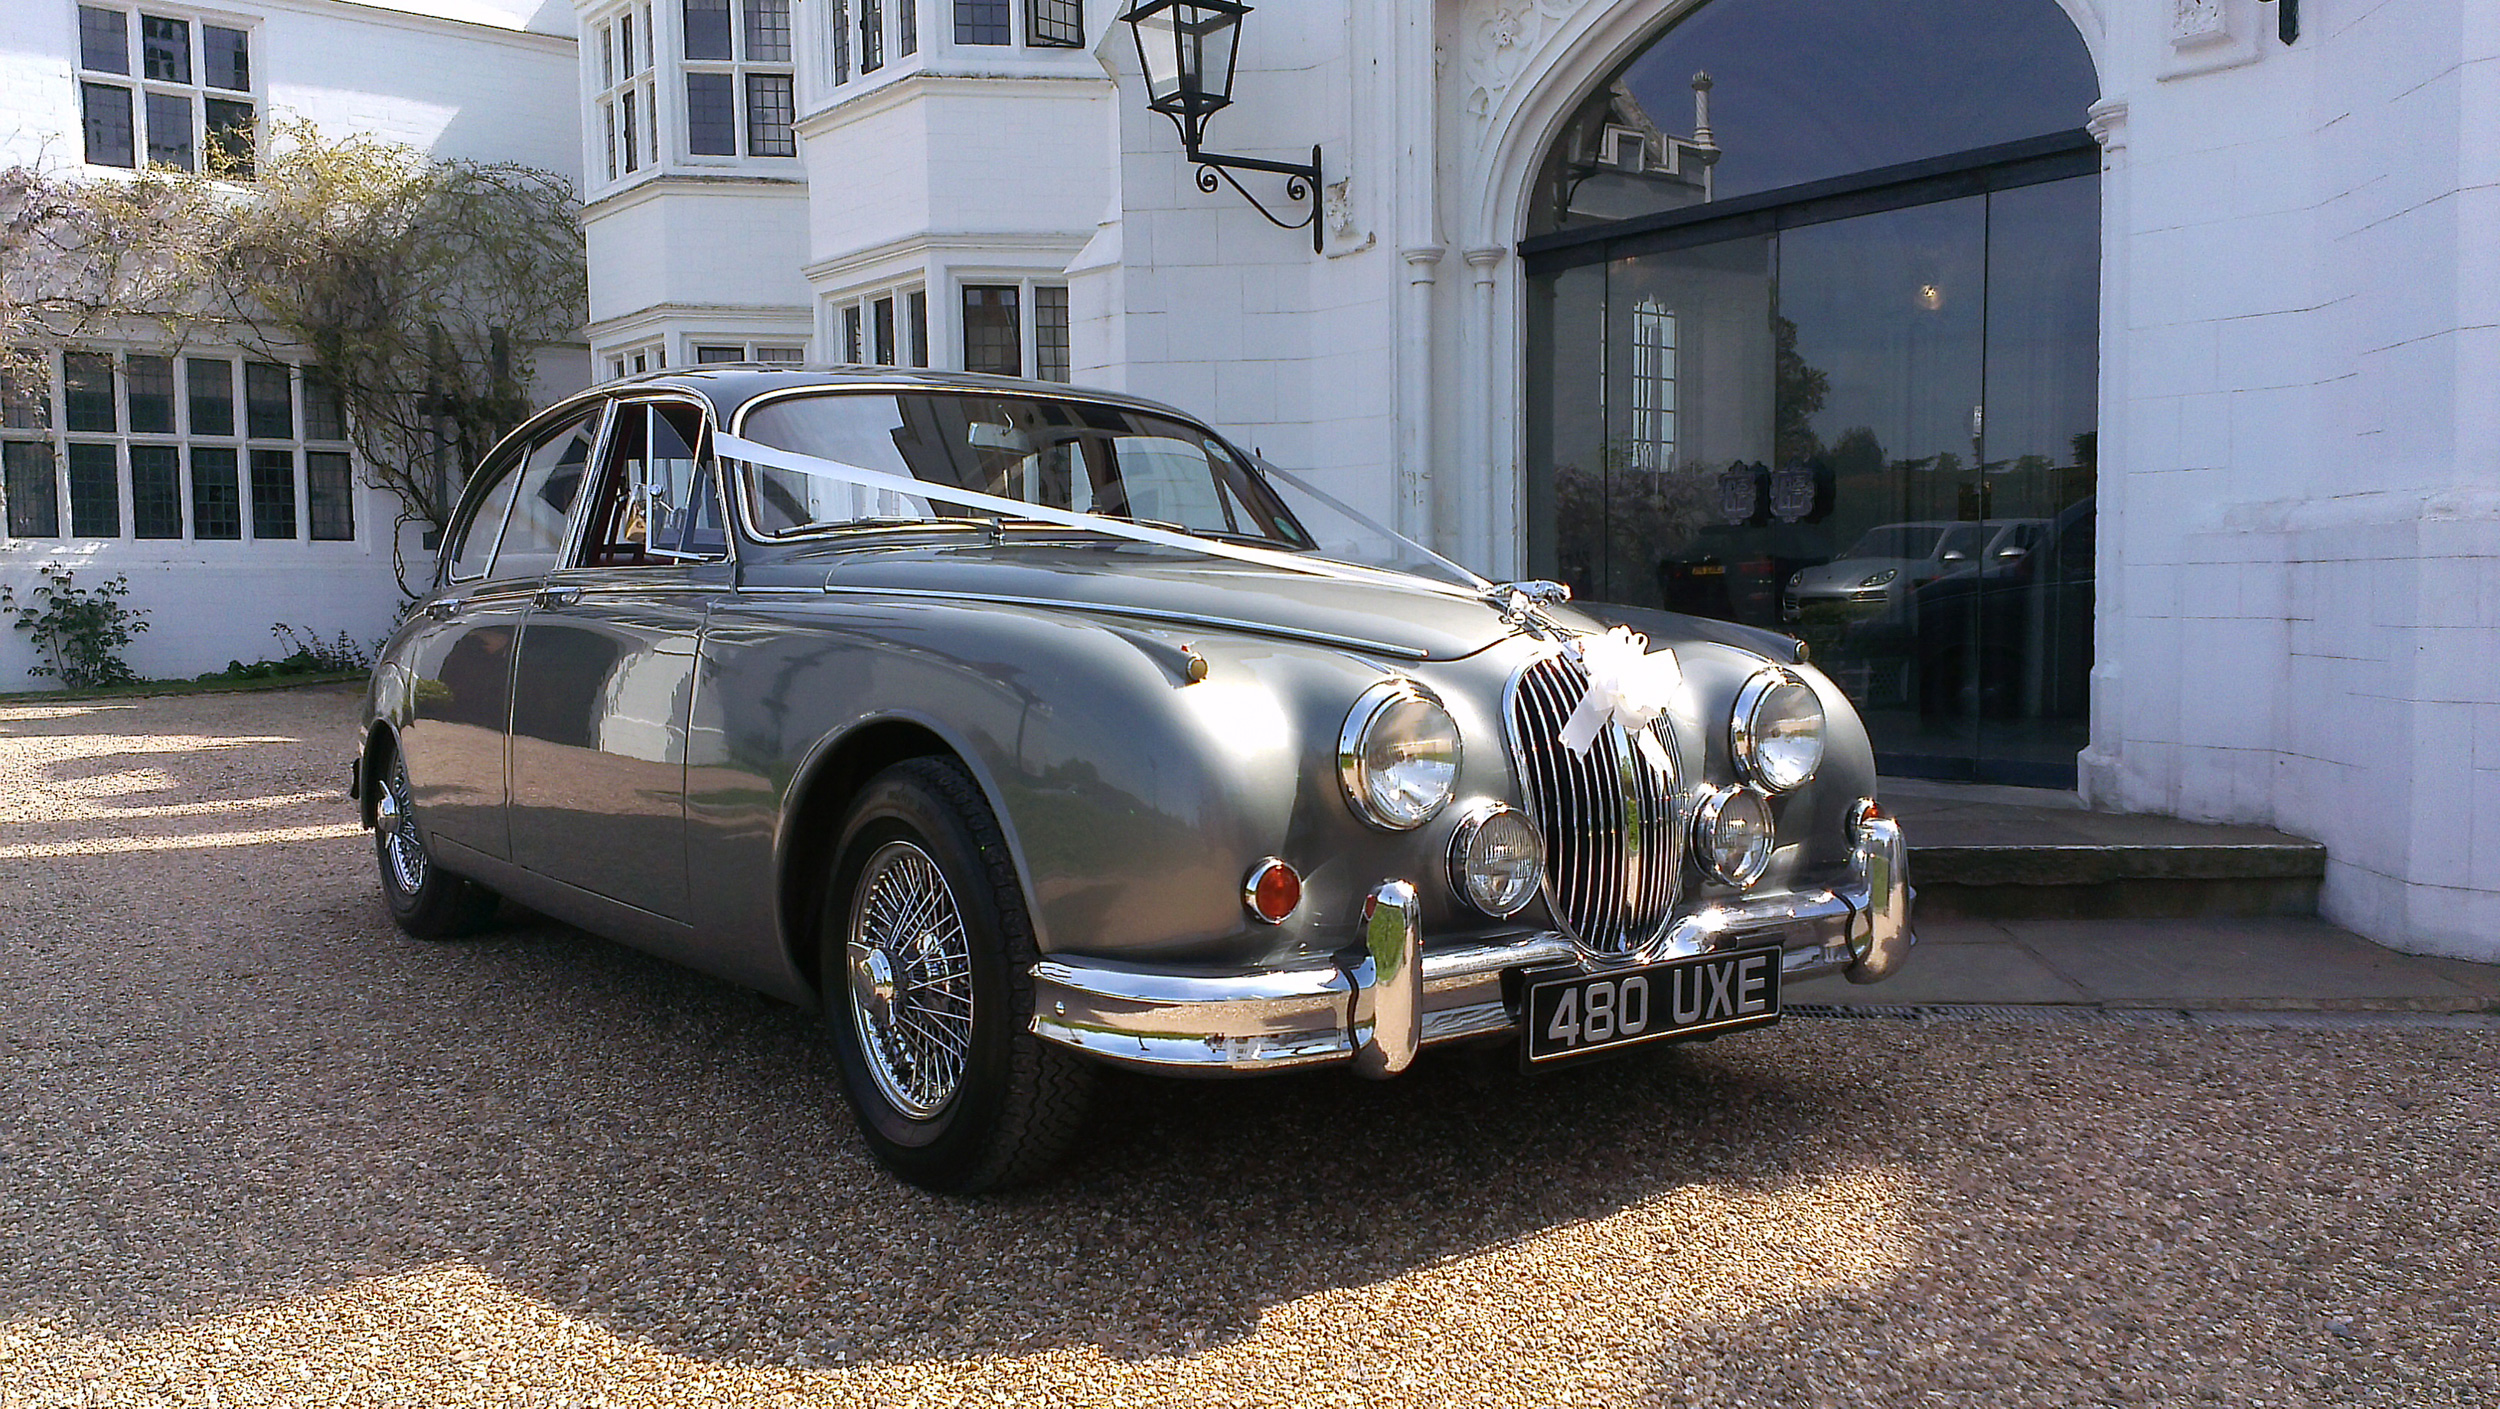 Jag at Danesfield House